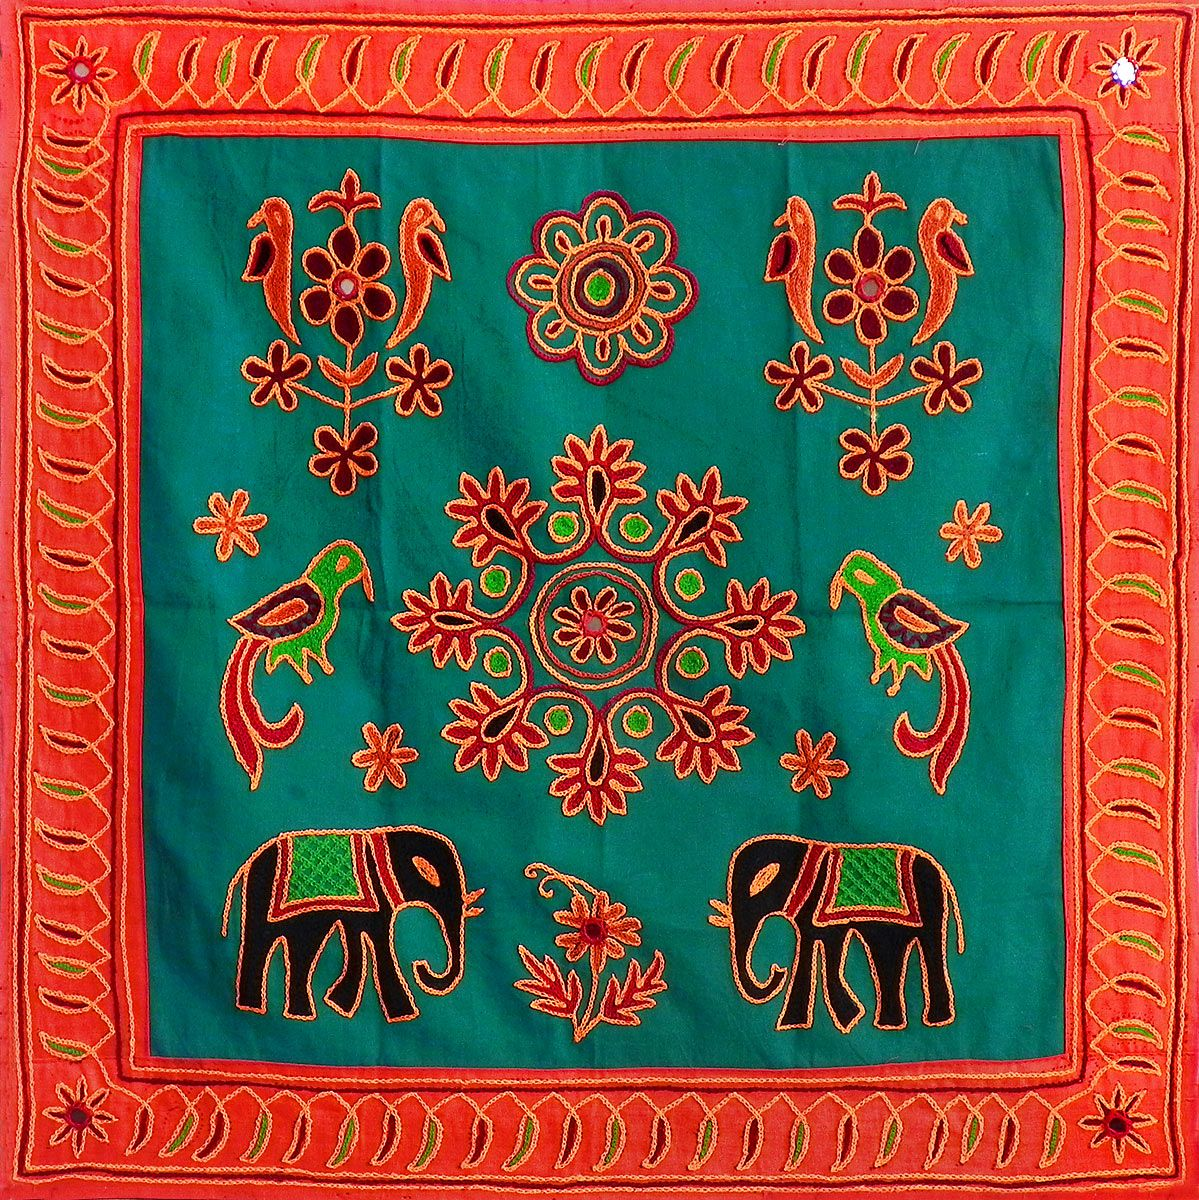 Cloth Wall Hangings embroidered green cloth with saffron border depicting nature